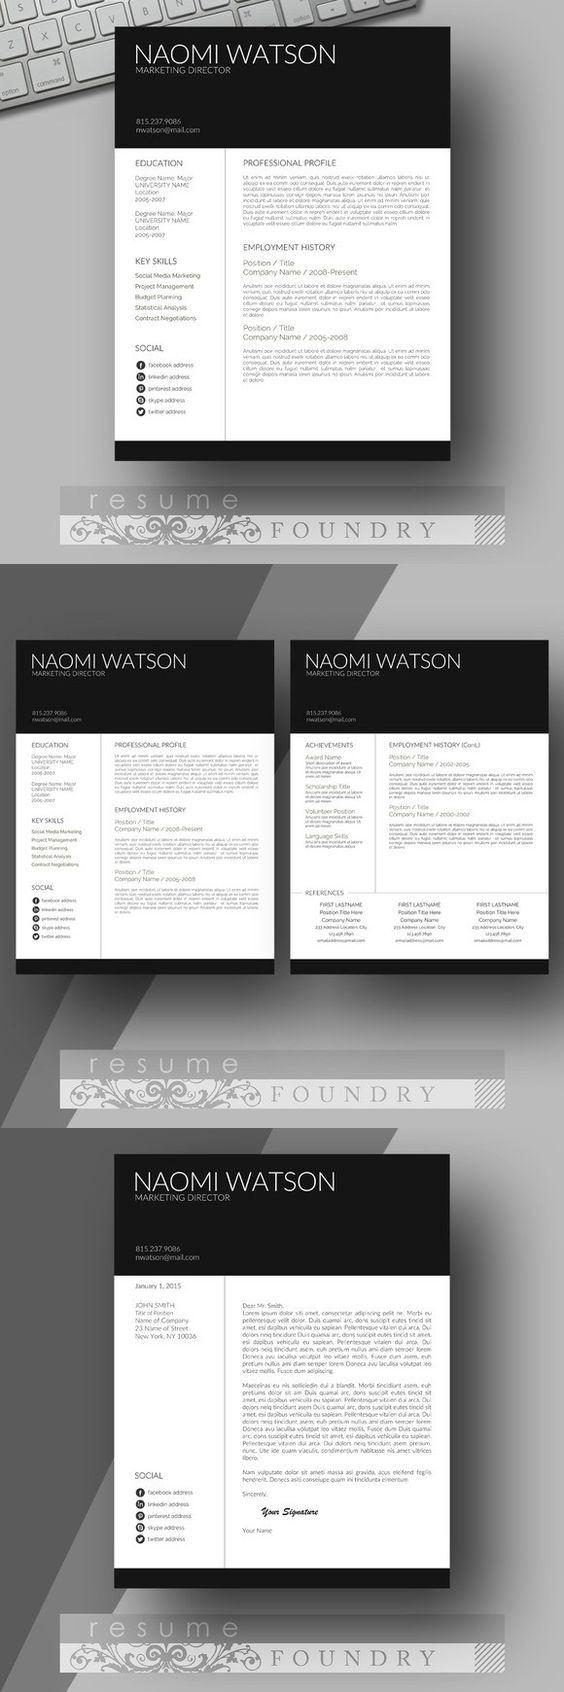 resume resume templates and modern resume template modern resume template look professional an easy to use resume template instant